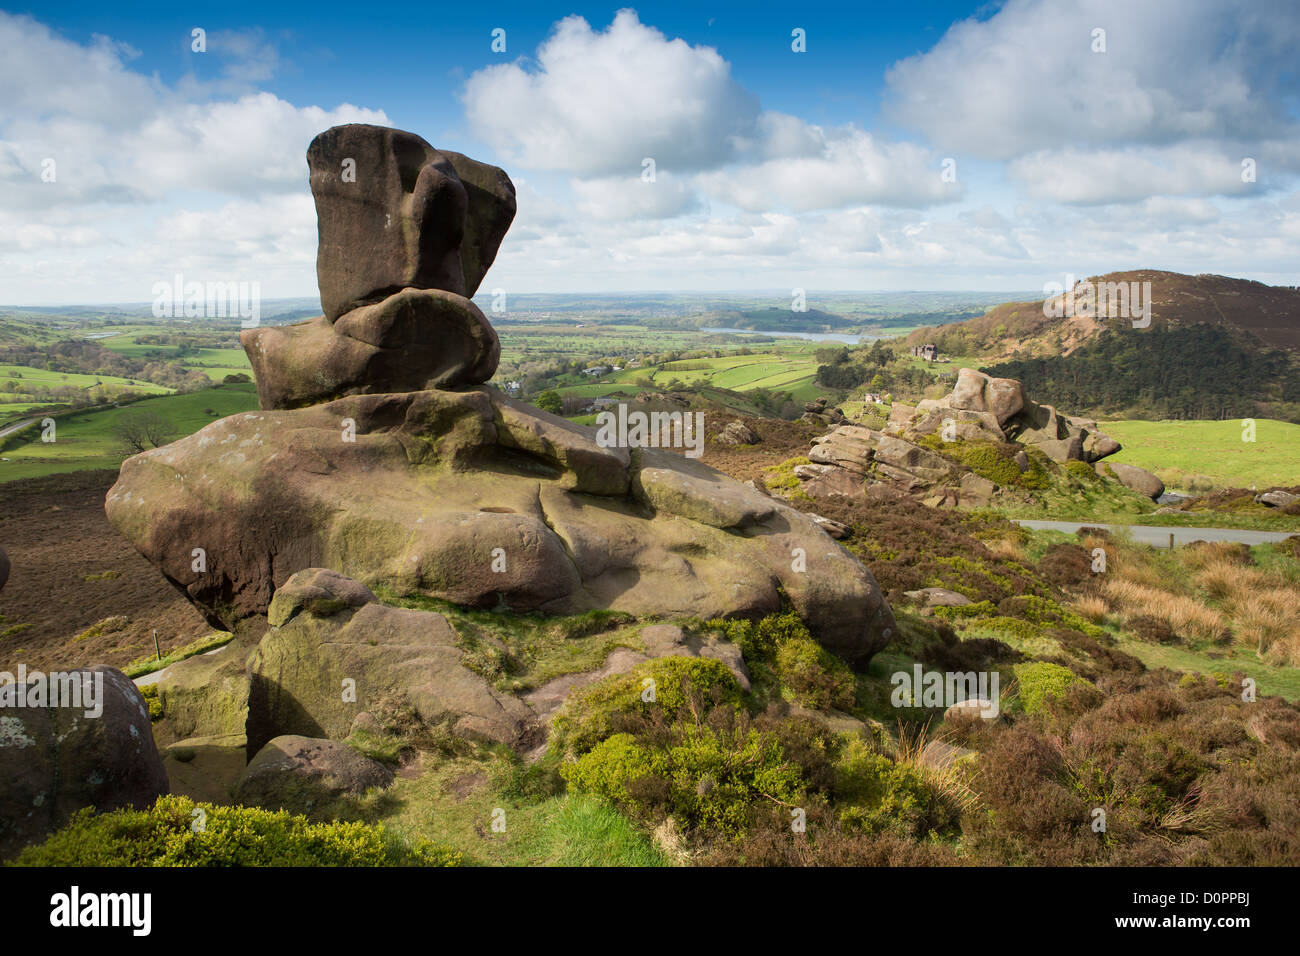 Ramshaw Rocks, a gritstone escarpment near The Roaches in the Peak District, Staffordshire, UK. - Stock Image